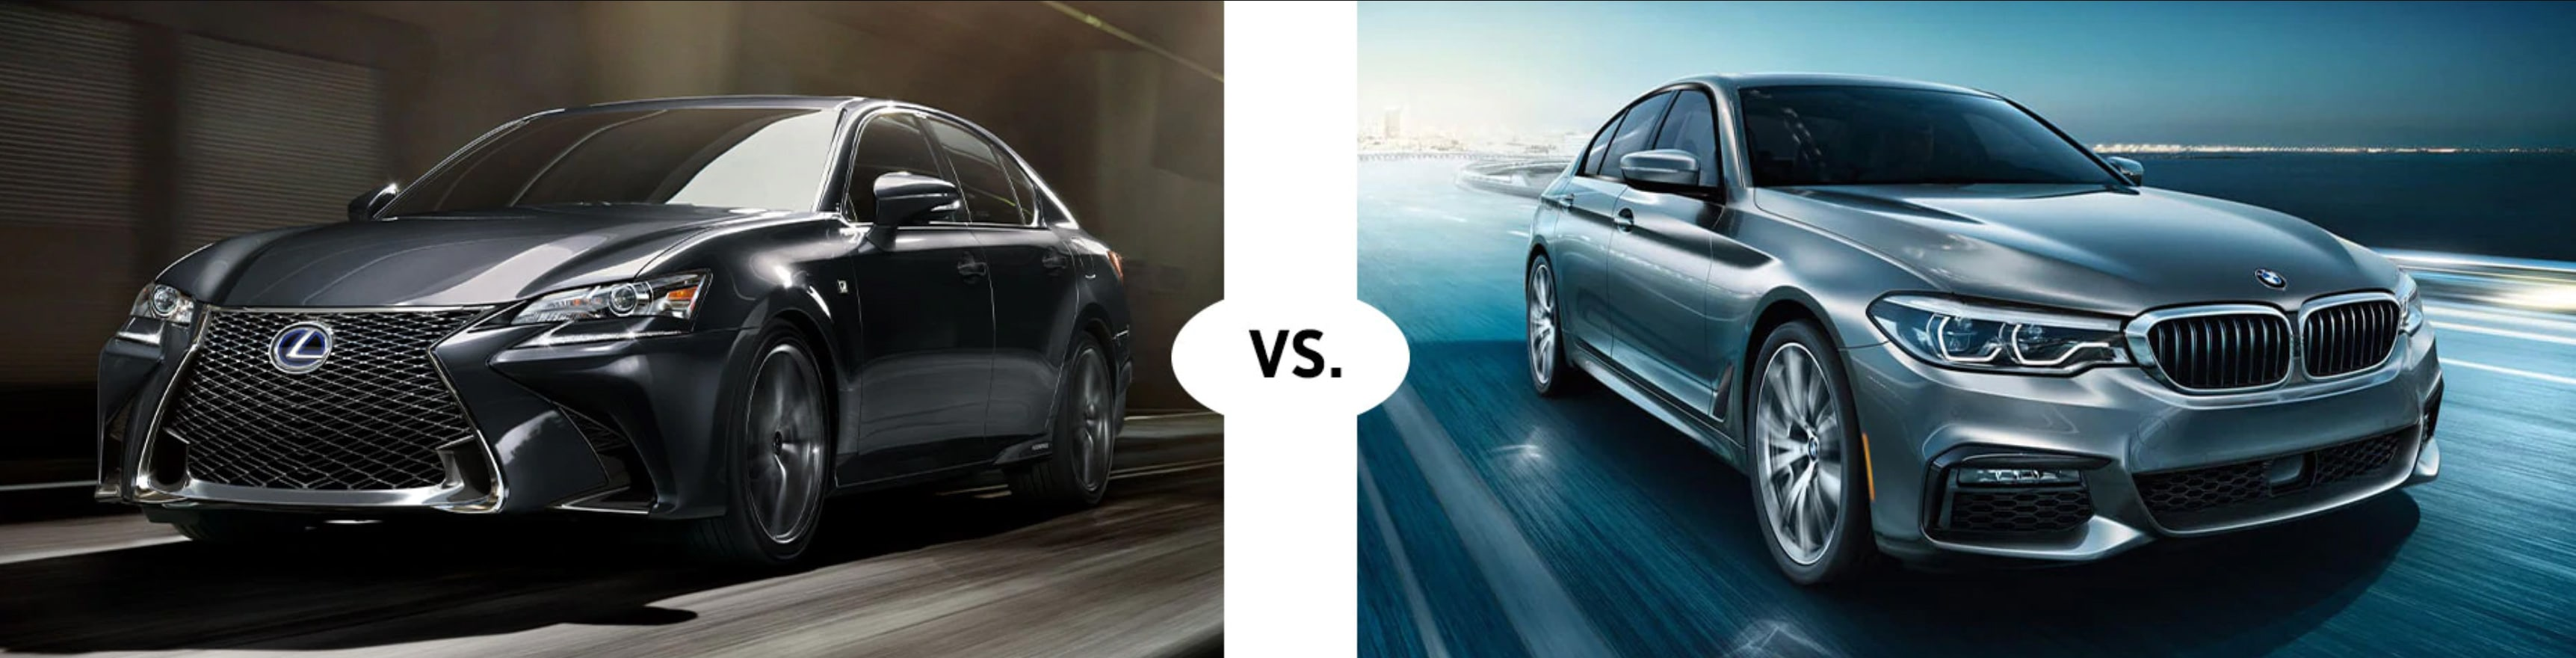 2019 LEXUS GS 350 VS. 2019 BMW 5 SERIES